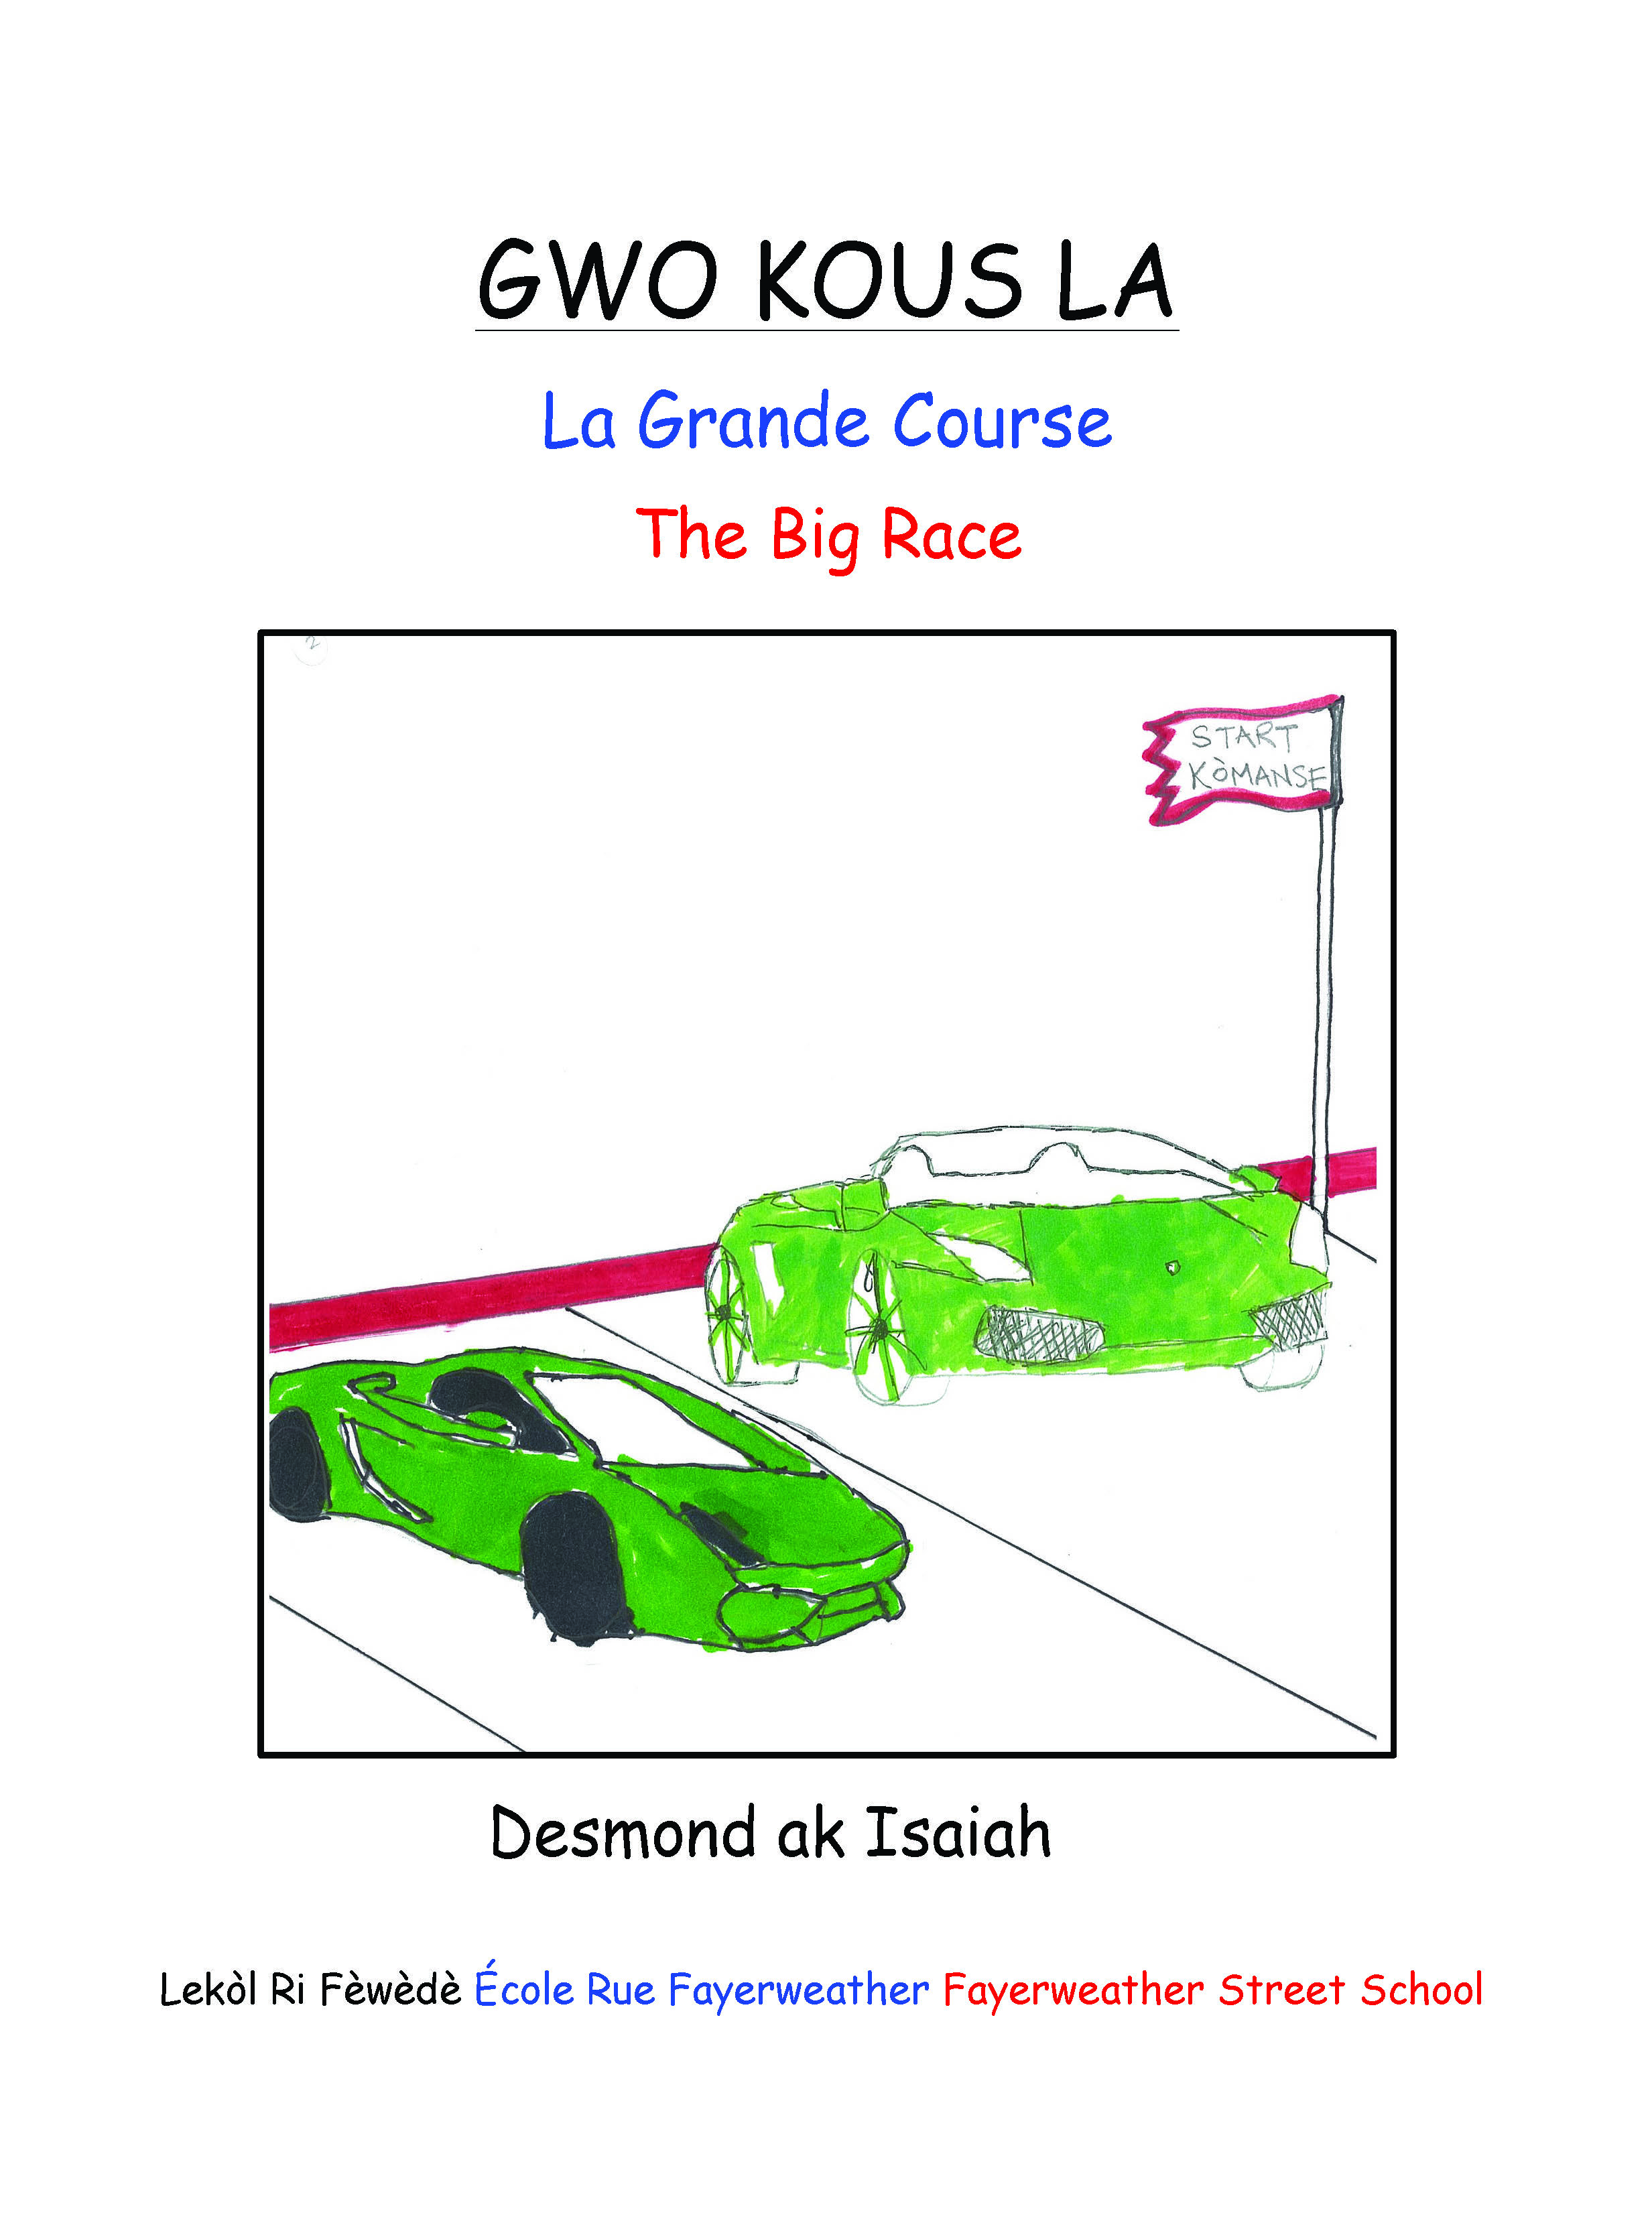 GWO KOUS LA / The Big Race